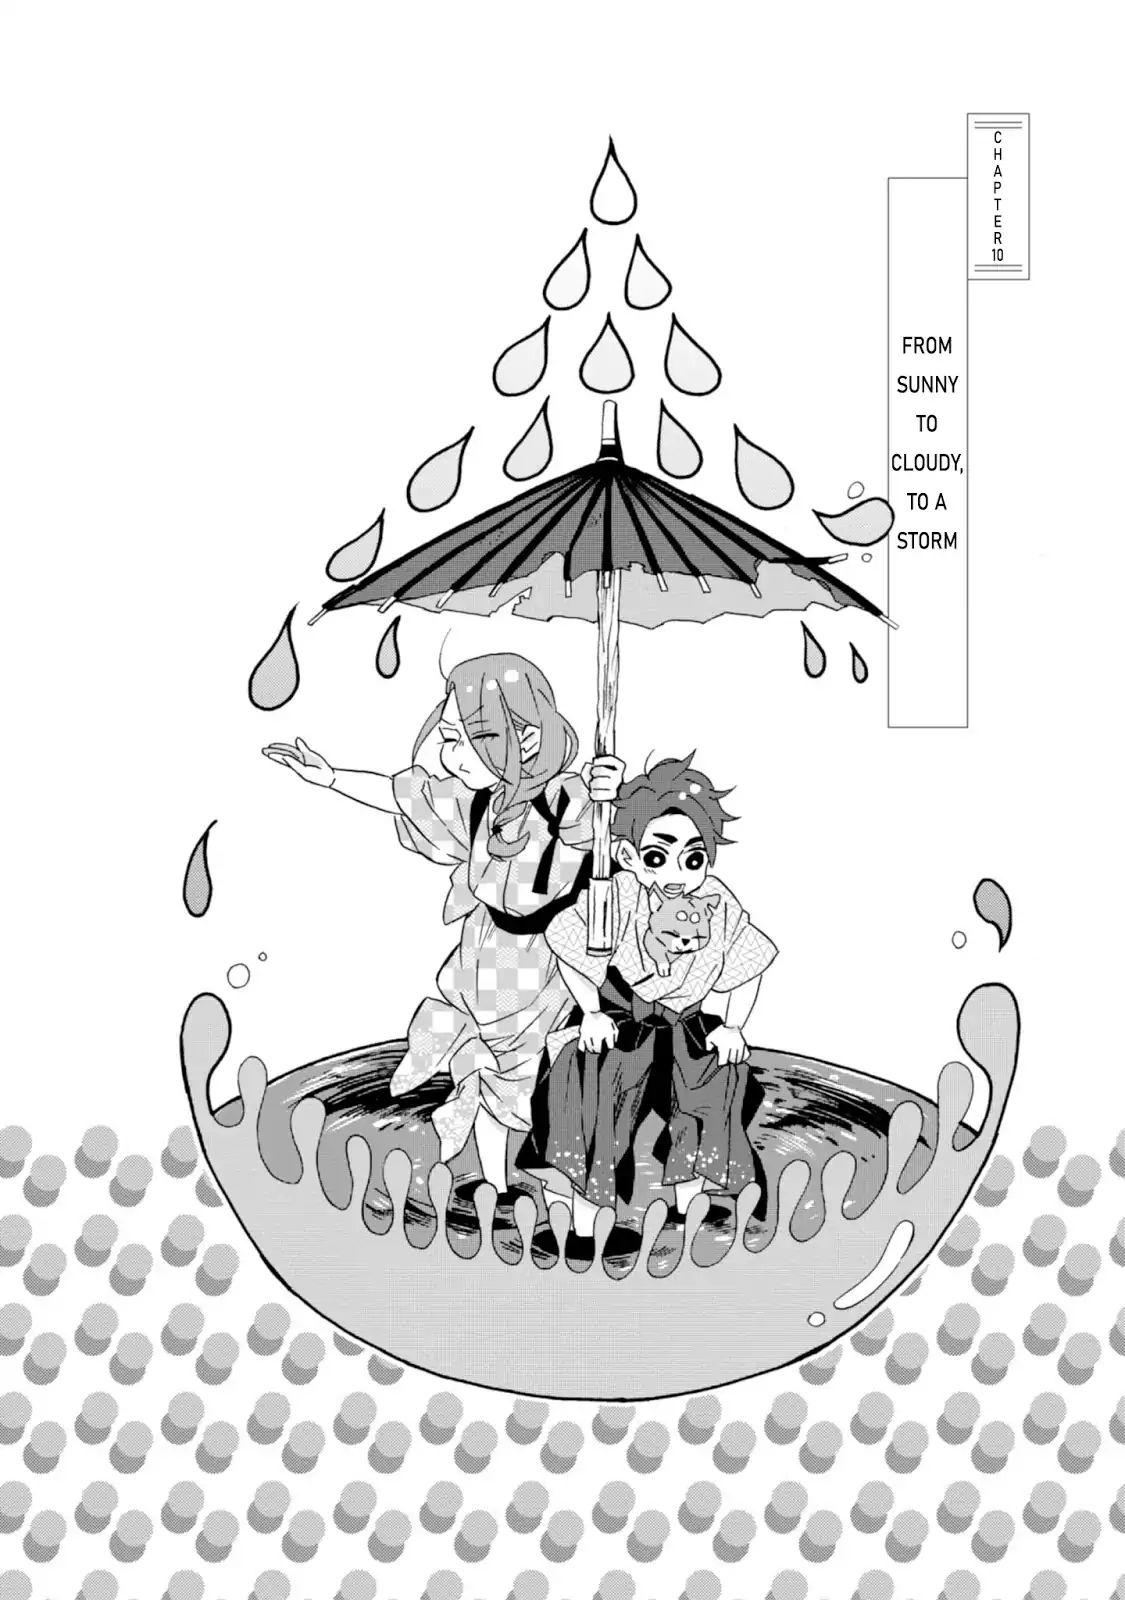 Will You Marry Me Again If You Are Reborn? Vol.2 Chapter 10: From Sunny To Cloudy To A Storm page 4 - Mangakakalots.com